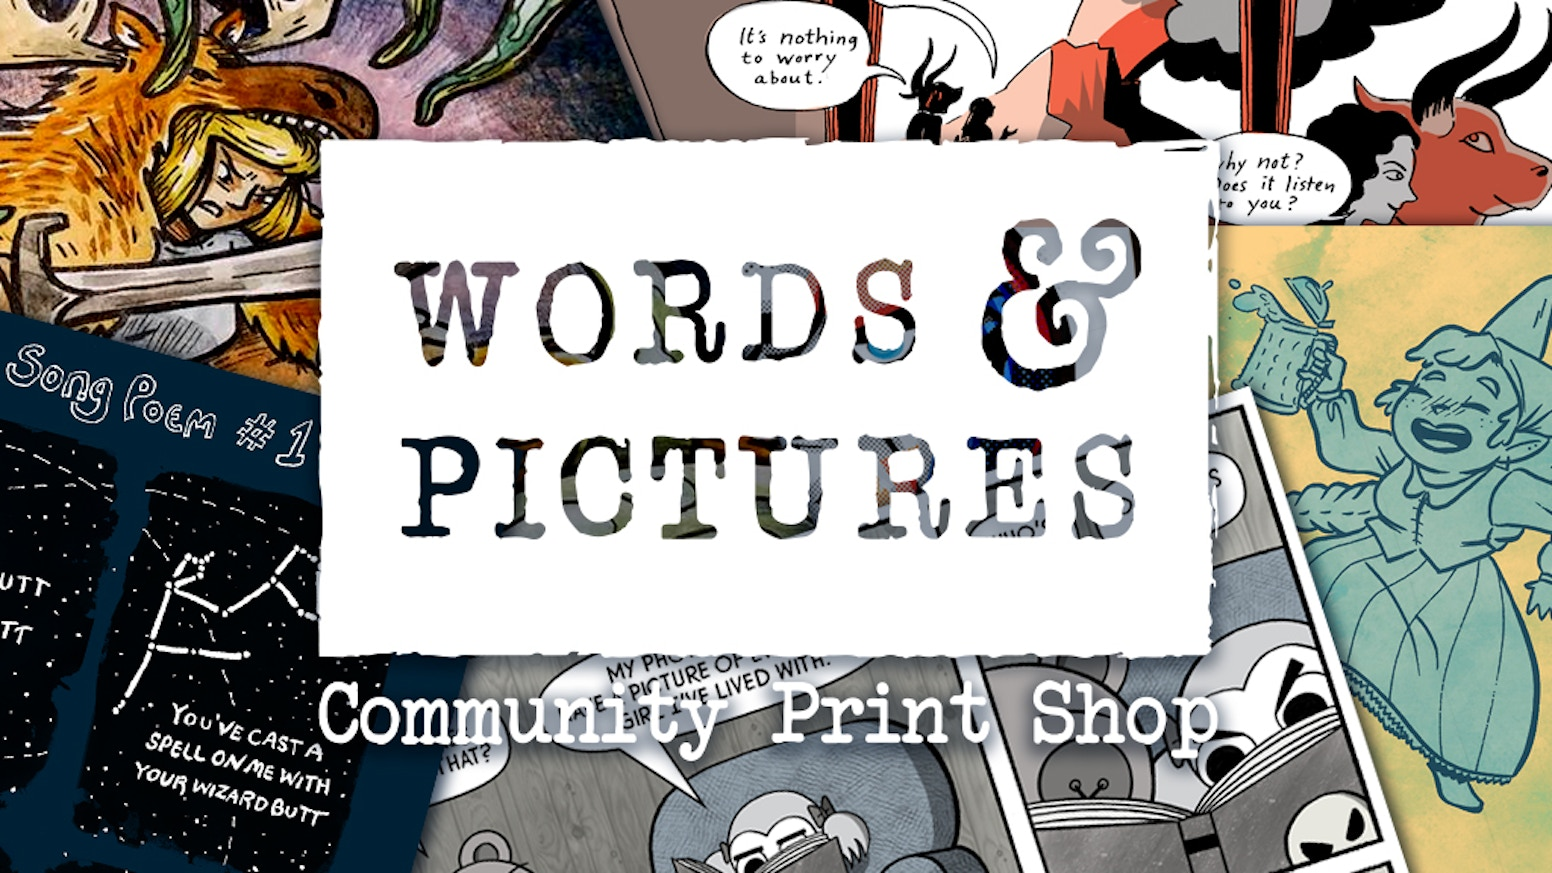 Words & Pictures is an upcoming print shop, studio space, and zine library in Essex Junction, VT.